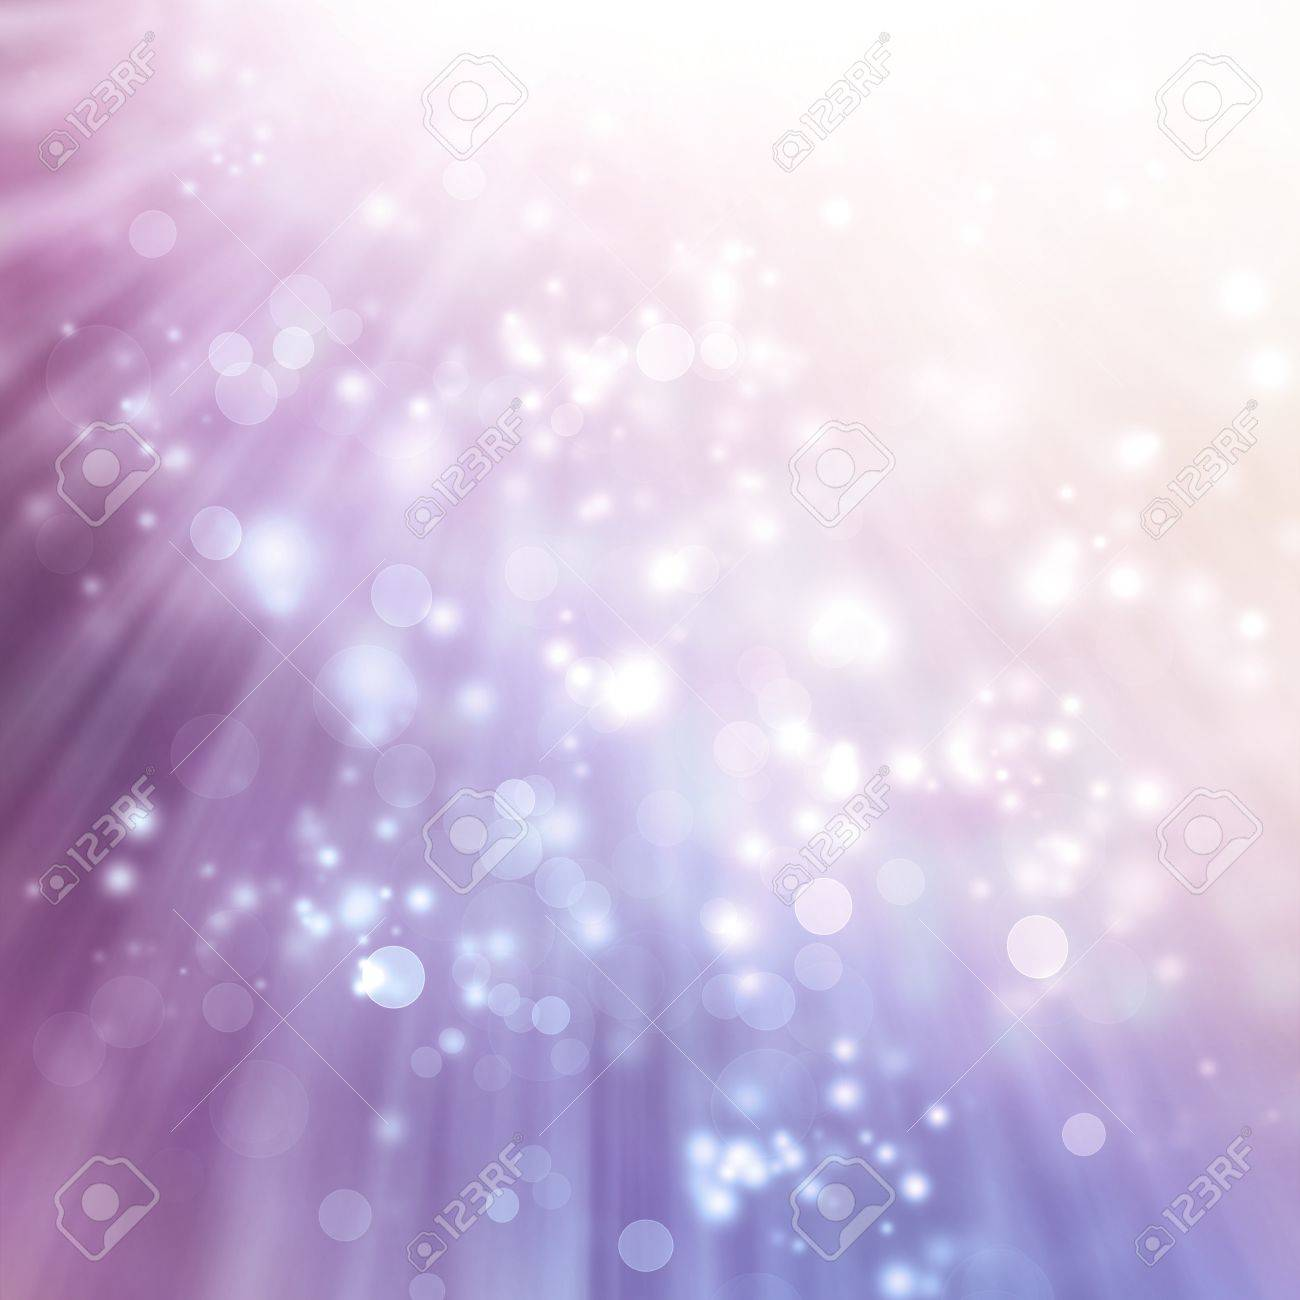 Abstract Lights on Purple Colored Background Stock Photo - 19942864